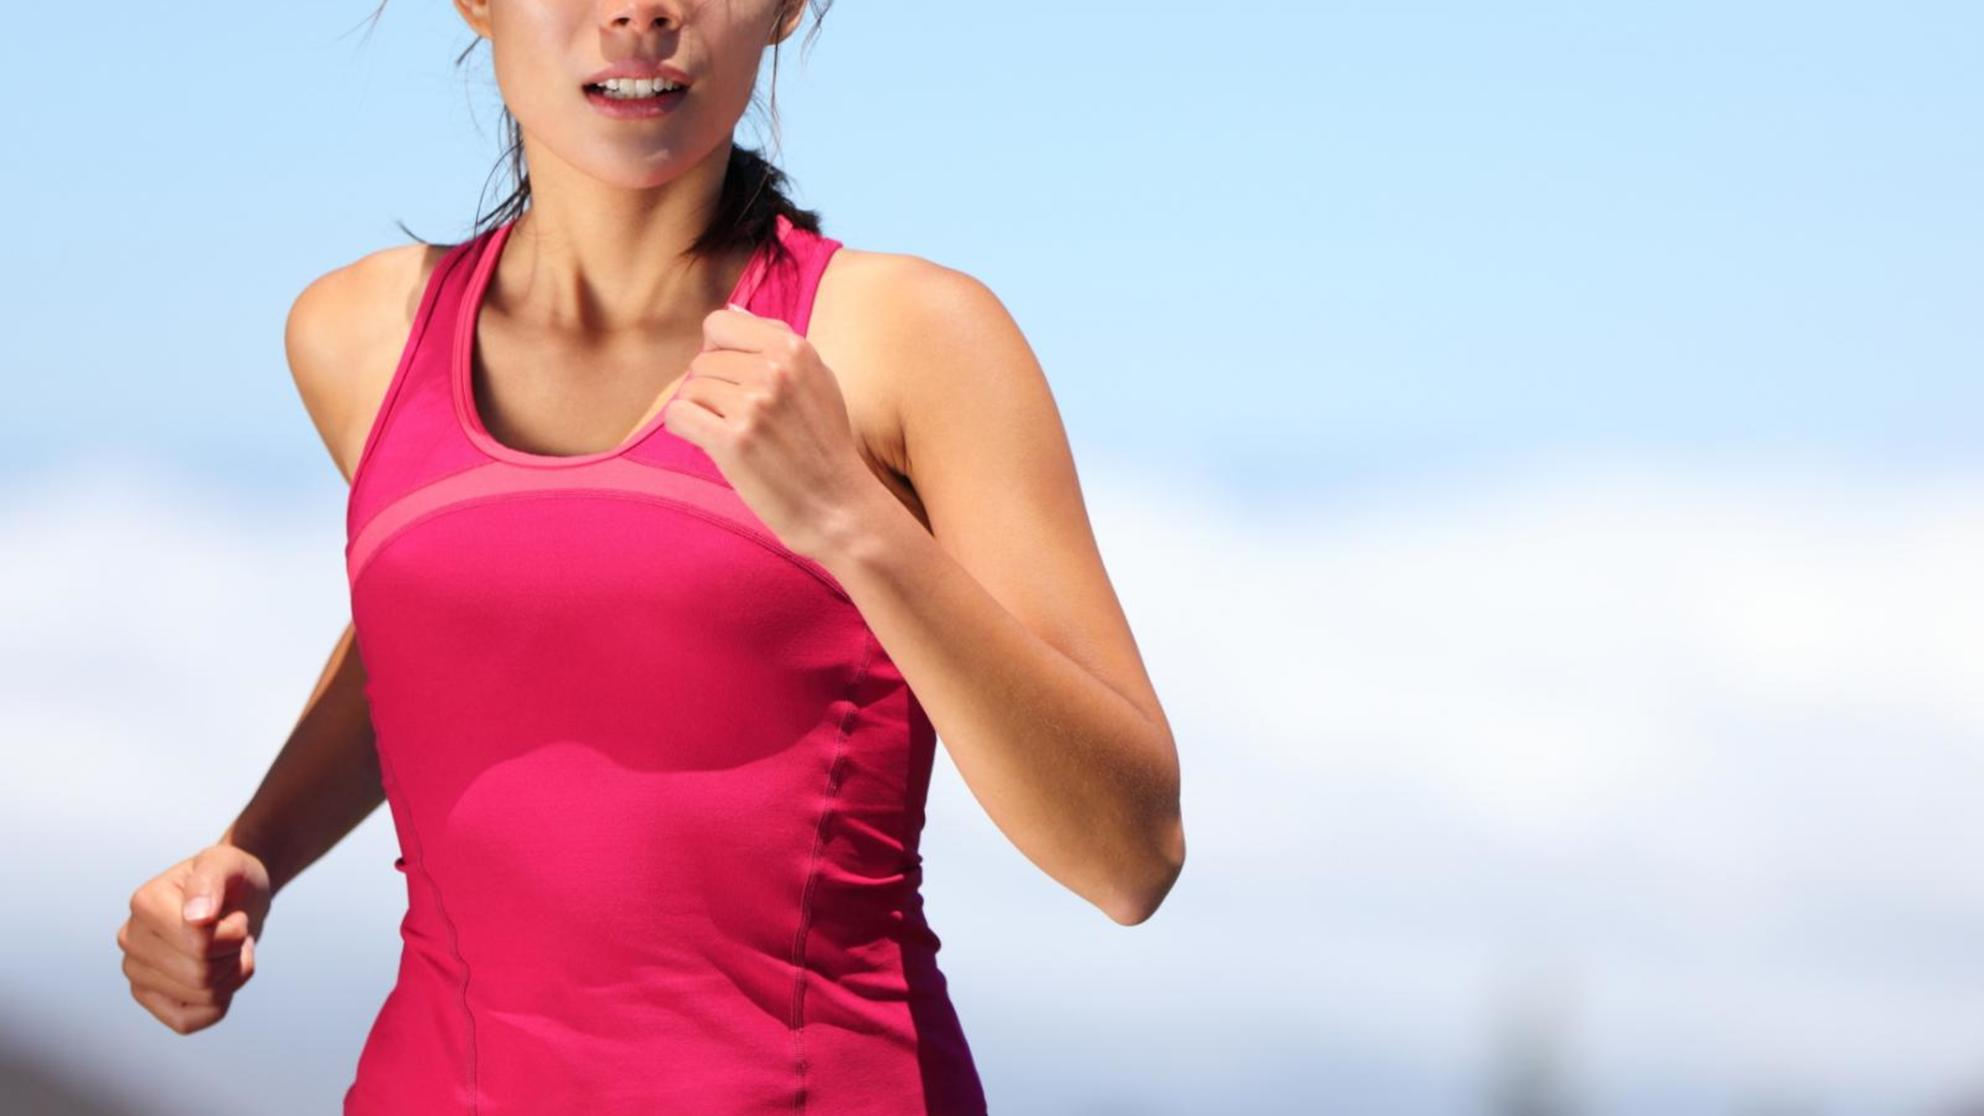 Get the Most Out of a Minimalist Workout